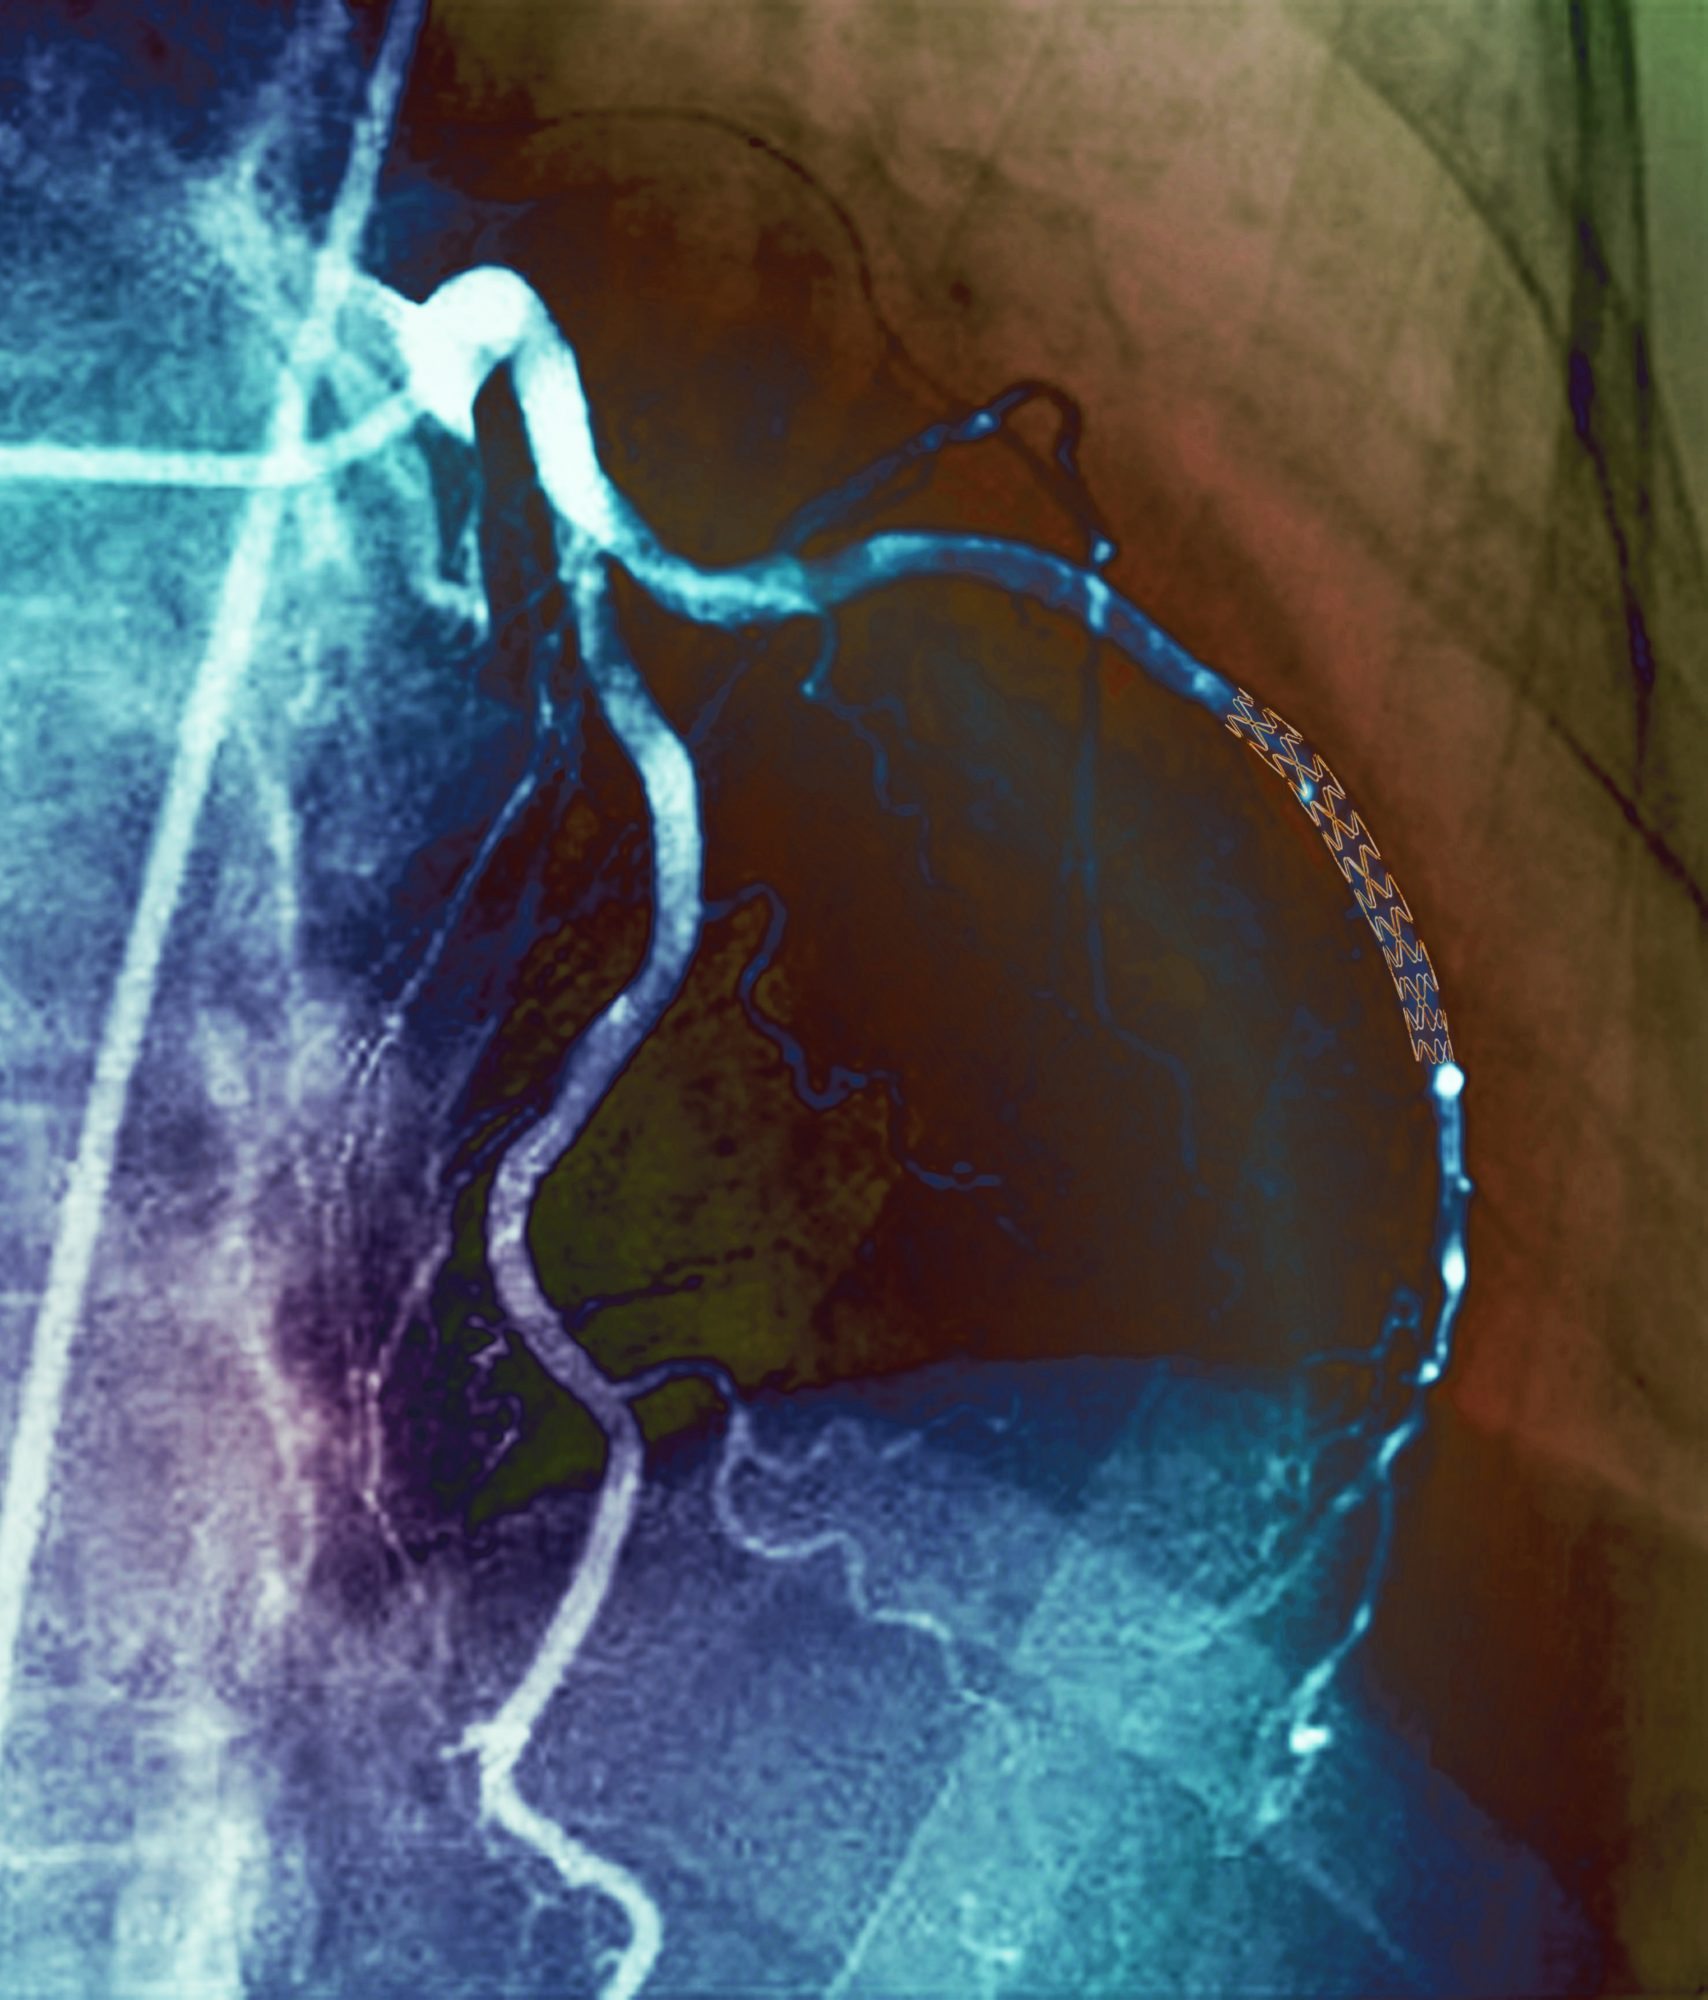 catheterization lab Coronary stent, X-ray Coronary stent. Coloured angiogram (blood vessel X-ray) of the coronary arteries of a 52 year old patient. The artery at right has had a stent placed in it to treat a blockage.